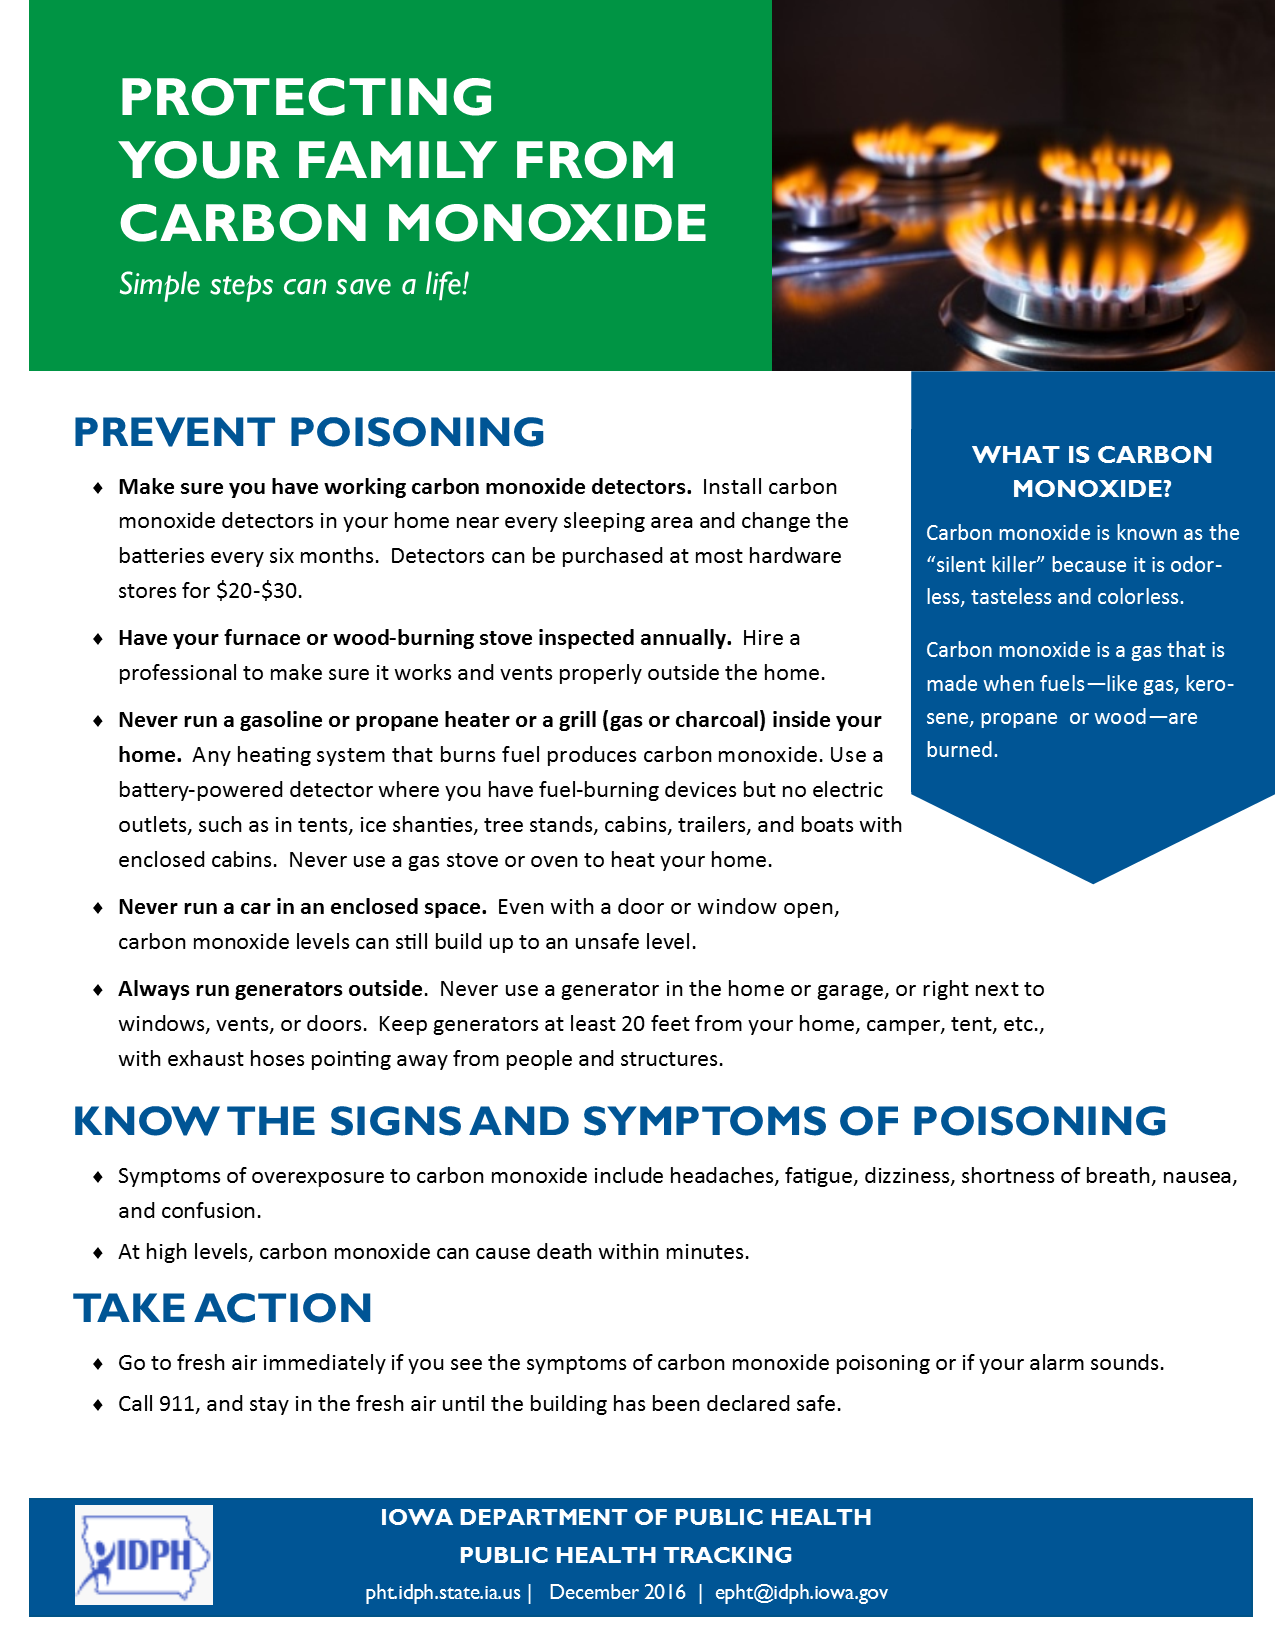 protect your family from carbon monoxide